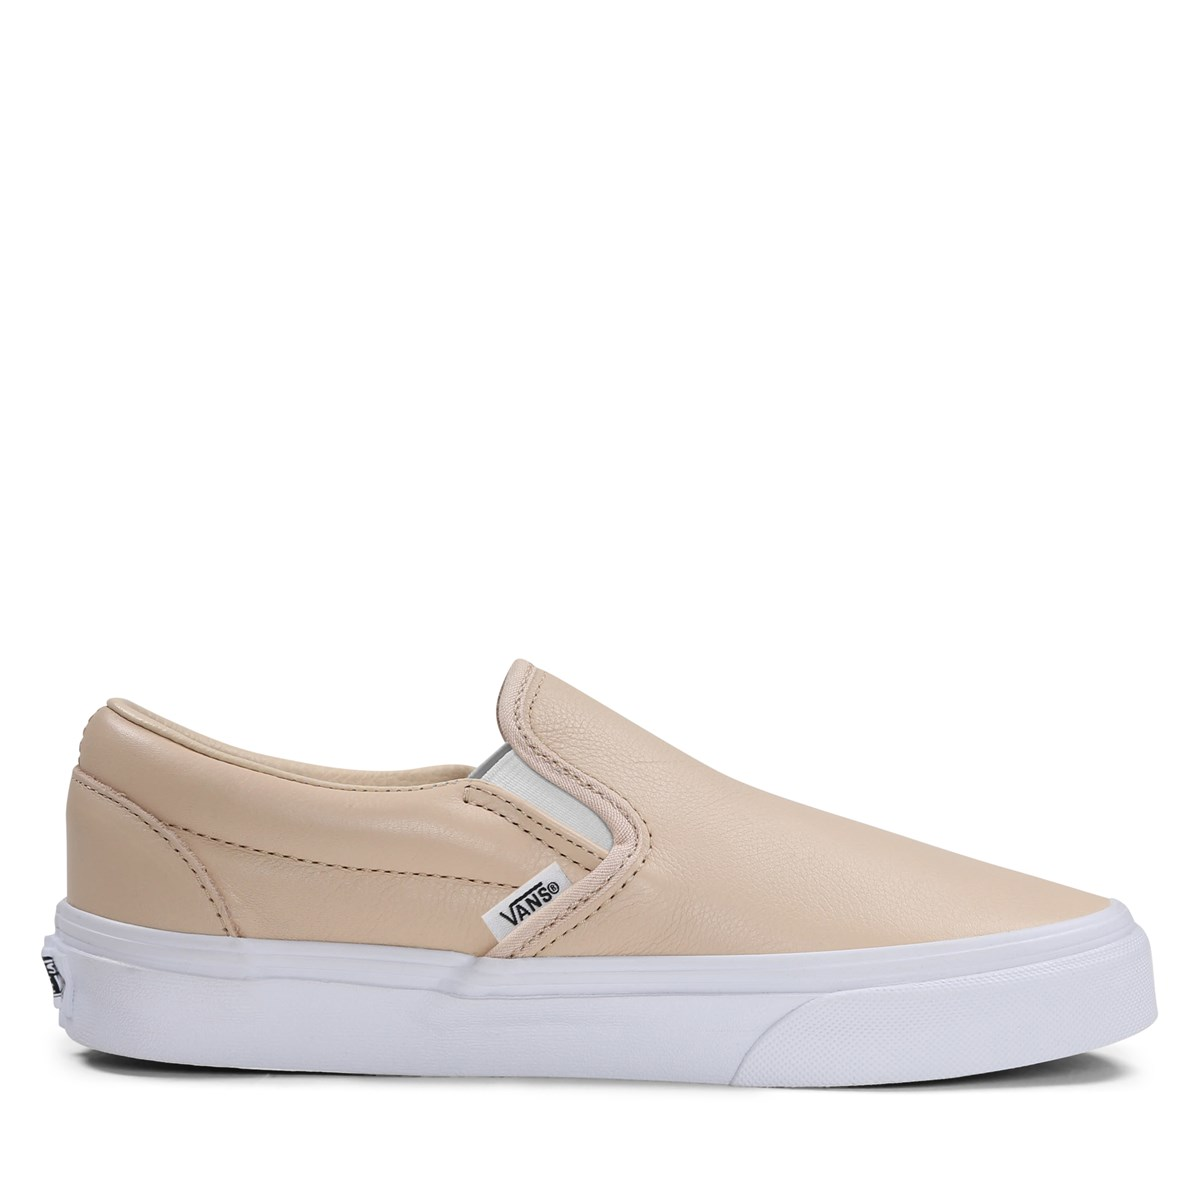 db389ef63ed205 Women s Classic Slip-On Frappe Leather. Previous. default view ...